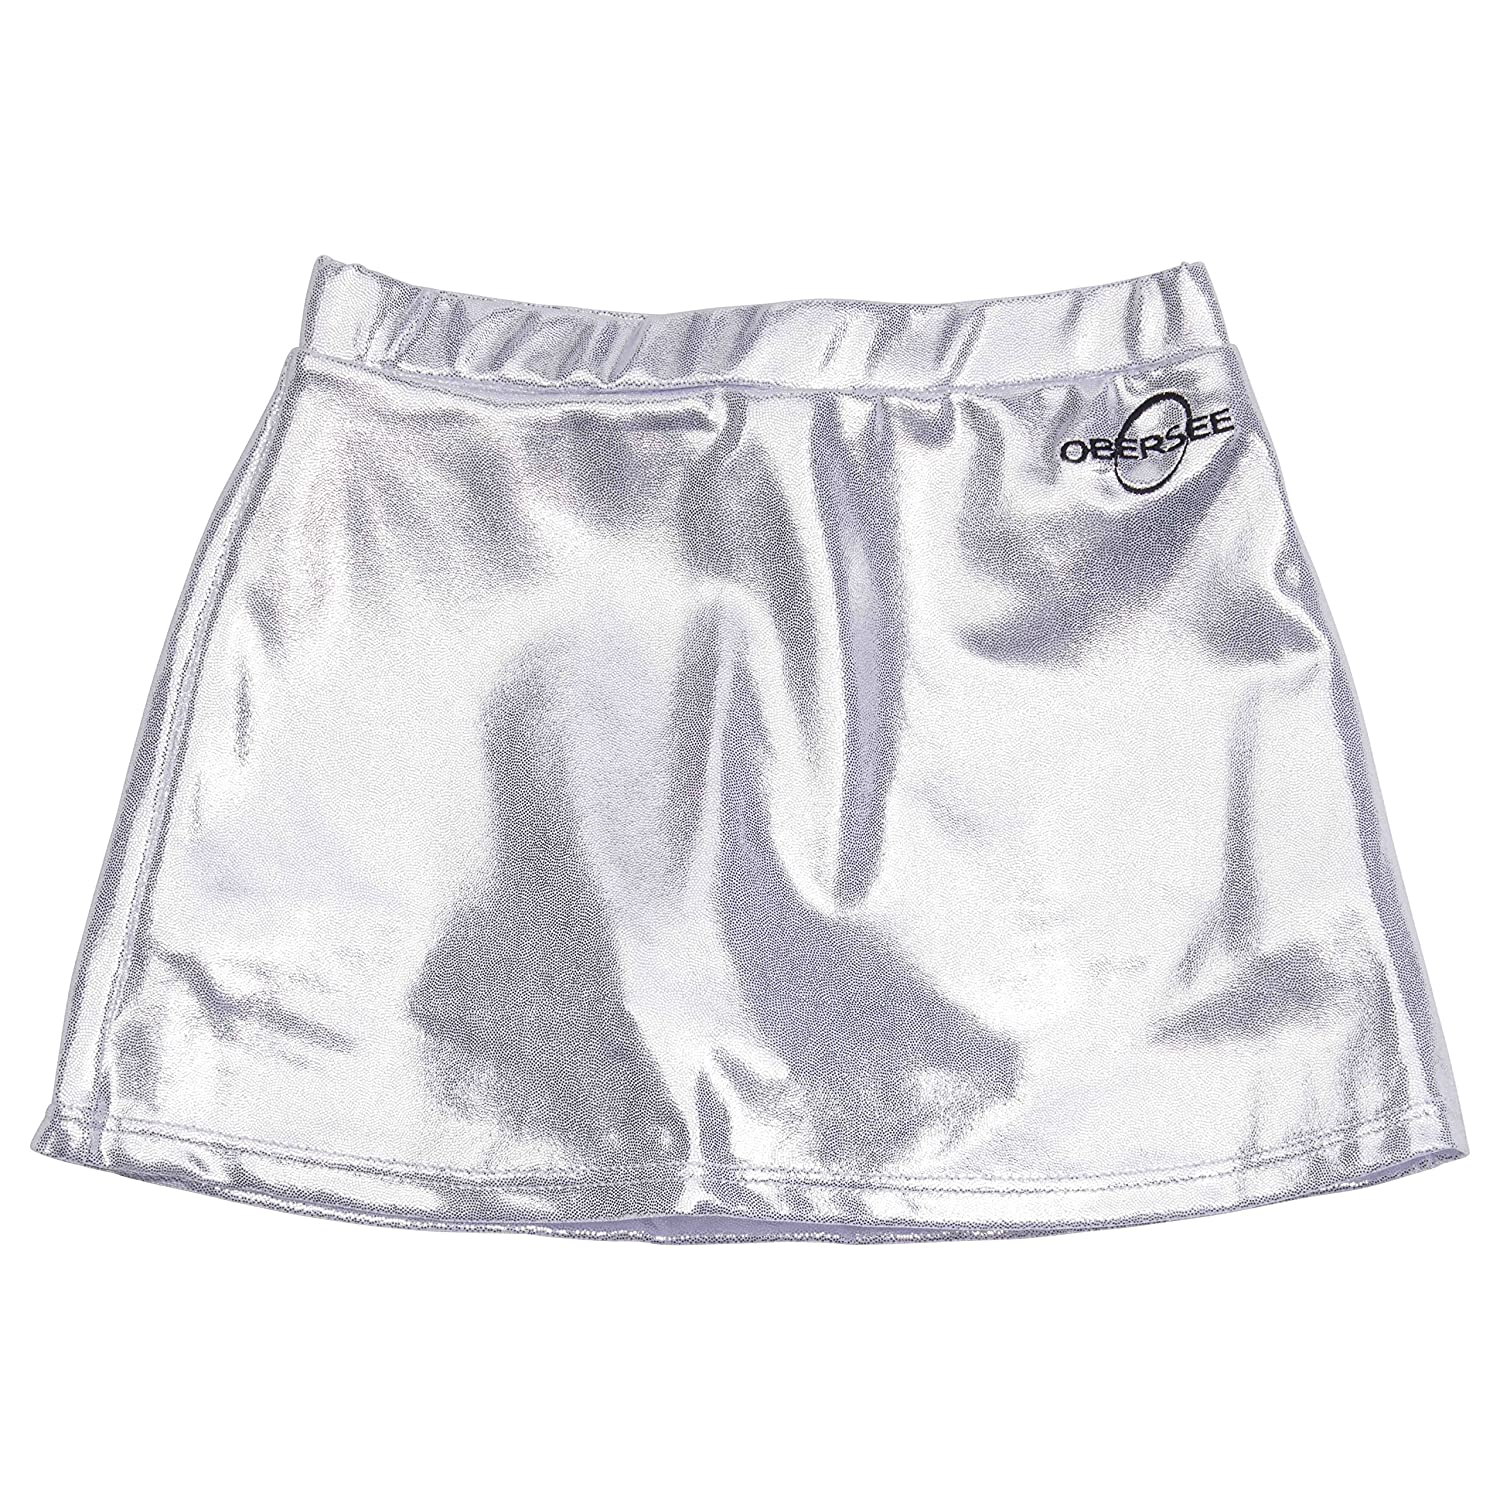 Silver Medium Obersee Cheer and Dance Skirt, Purple, Small